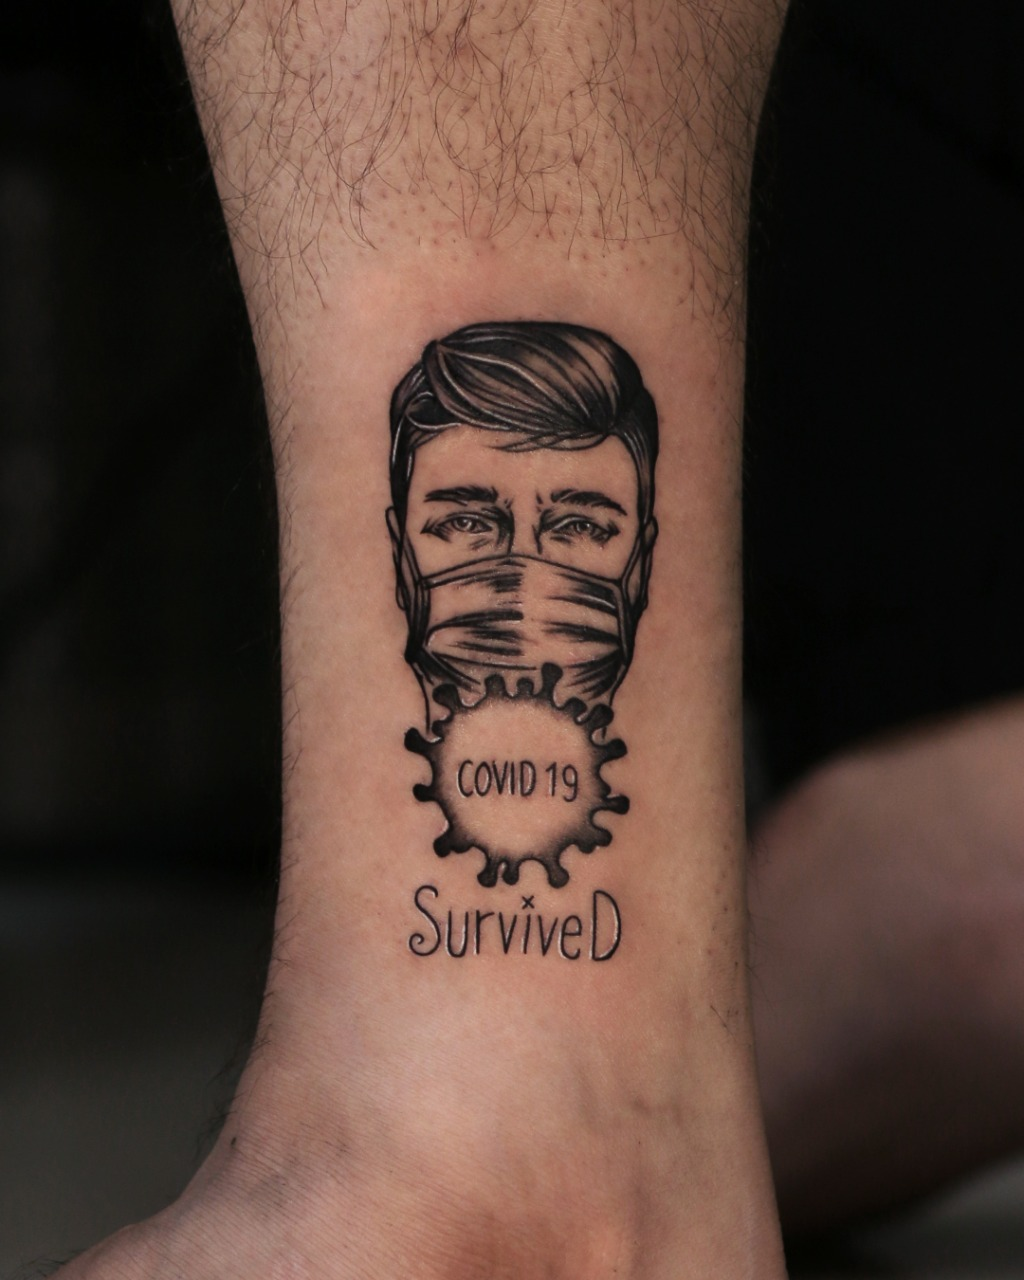 Danish Tattoo Studio offers COVID-19 tattoos to clients reminiscent of survival